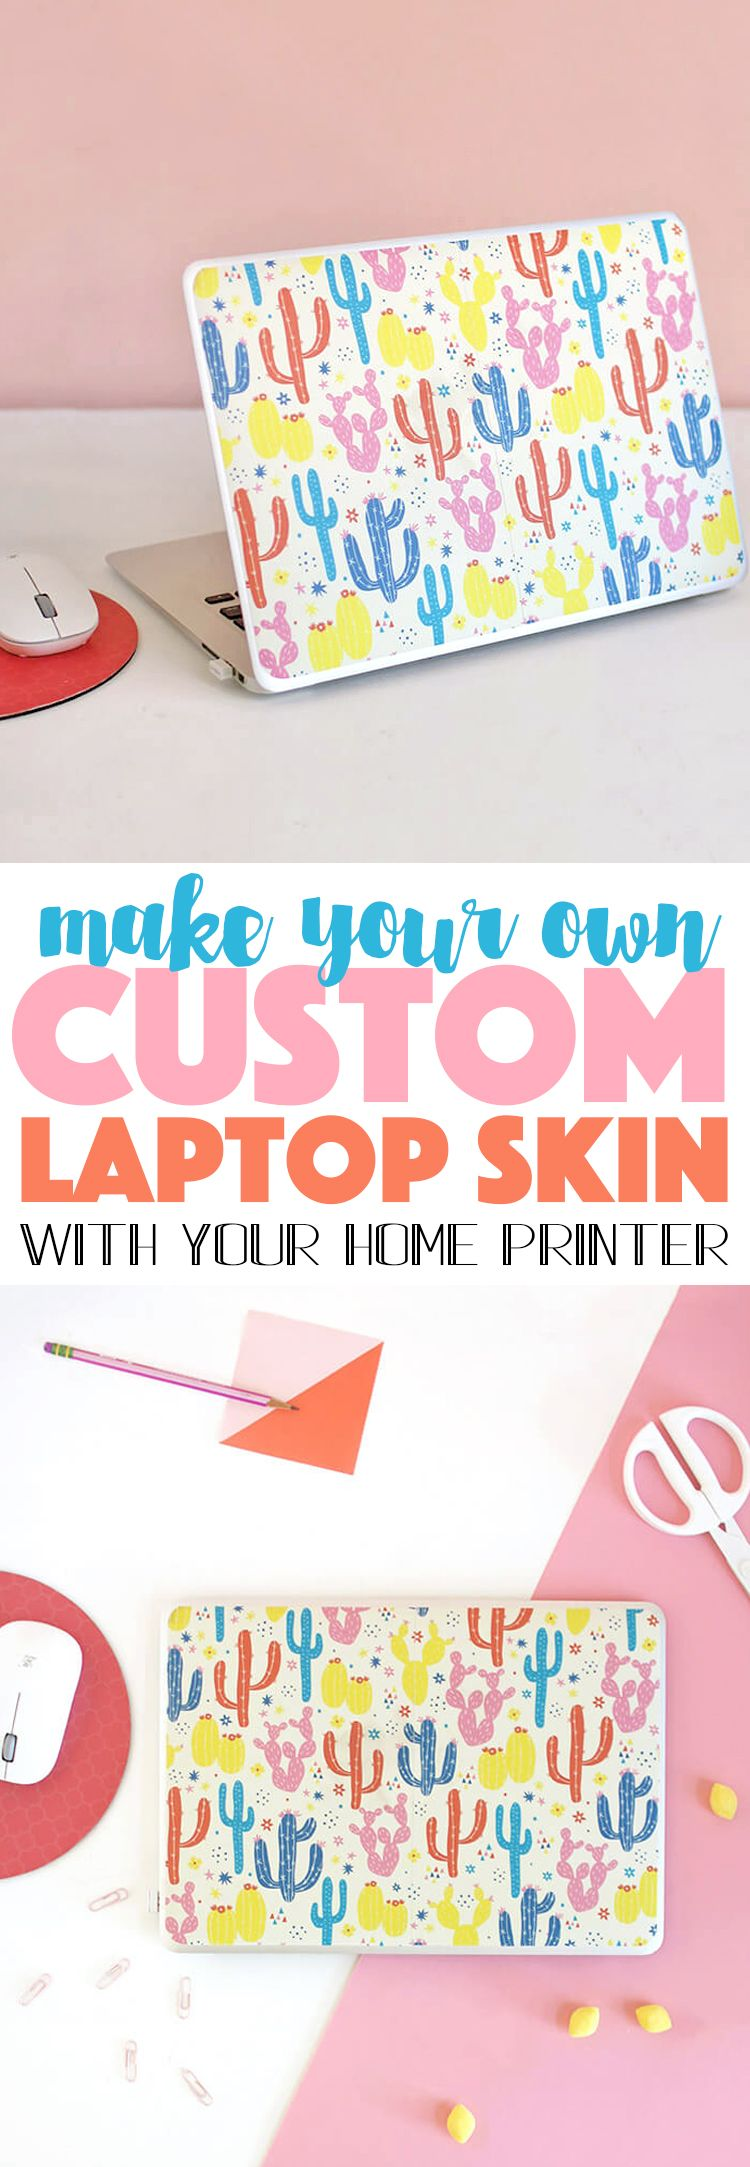 Diy laptop skin learn how to make your own custom durable laptop skin at home